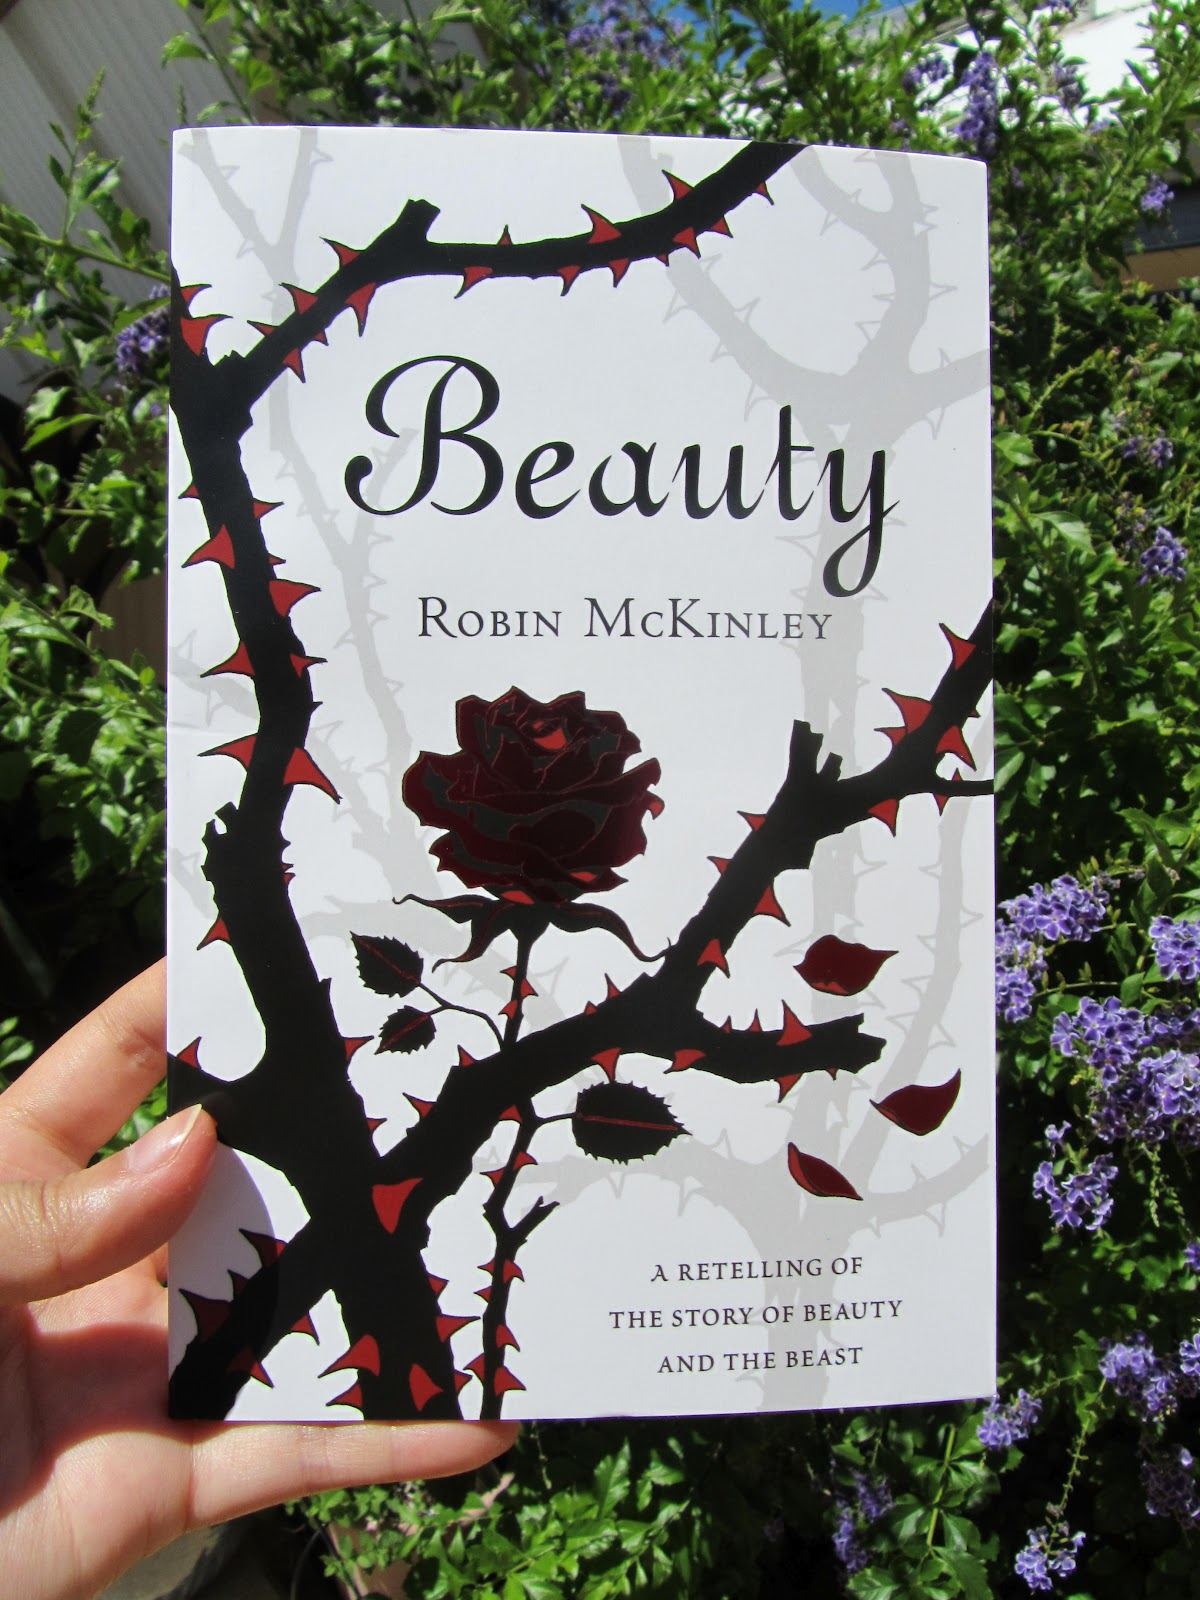 beauty by robin mc kinley essay Beauty by robin mckinley - my favorite retelling of beauty and the beast find this pin and more on books worth reading by alyssa nemeroff  beauty- robin mckinley i enjoy mckinley's various re-tellings of traditional fairy tales.